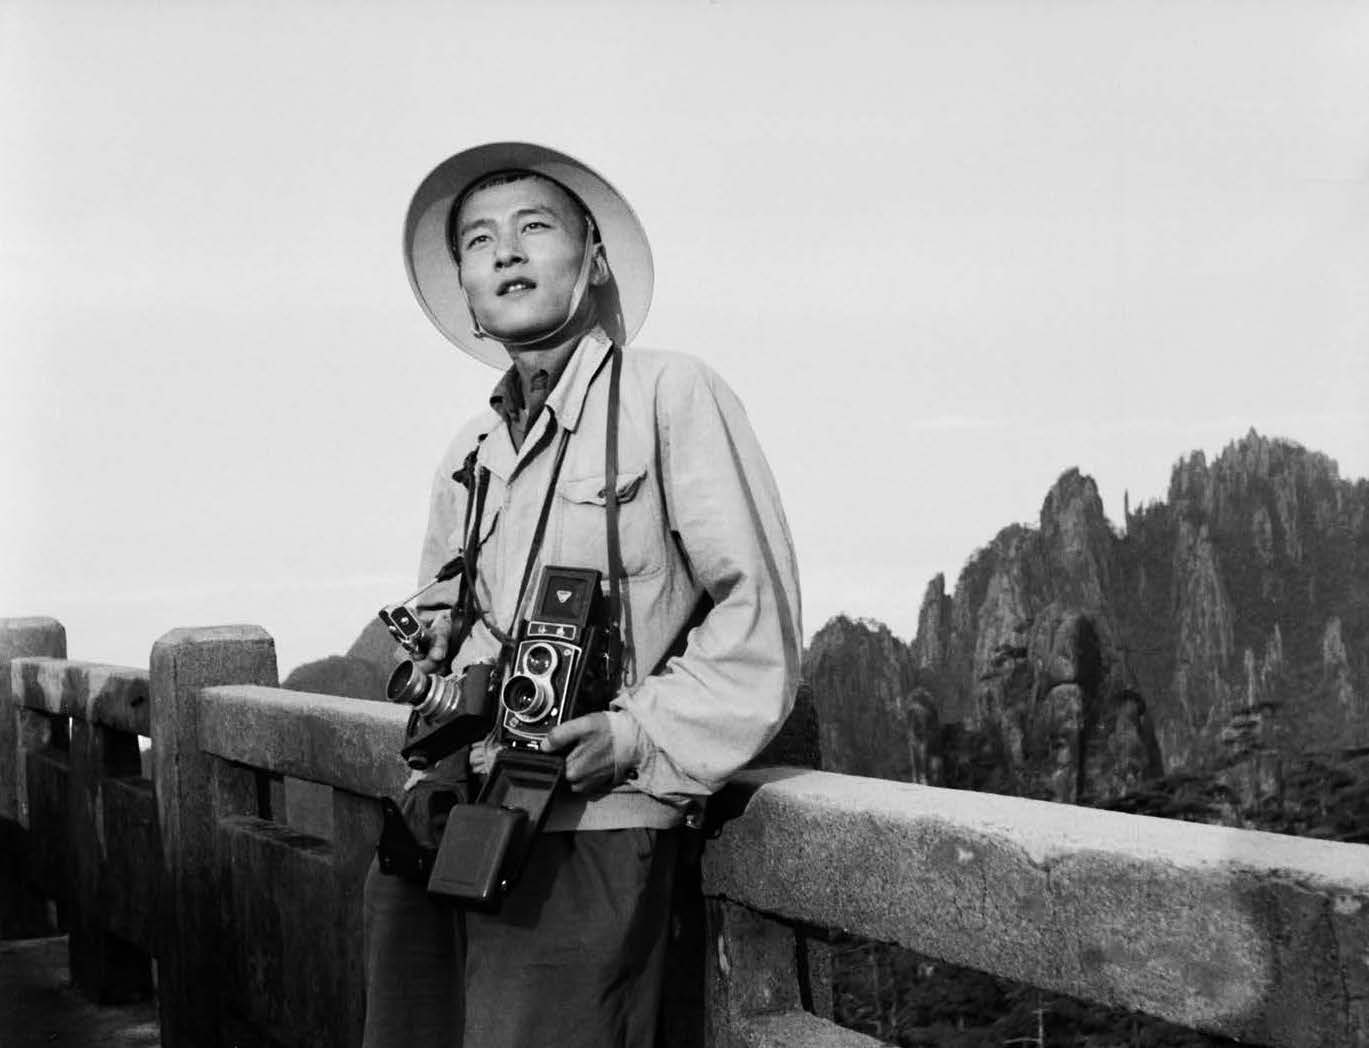 wang-qiuhang-cultural-revolution-selfies-1966-1976-photography-of-china-22.jpg